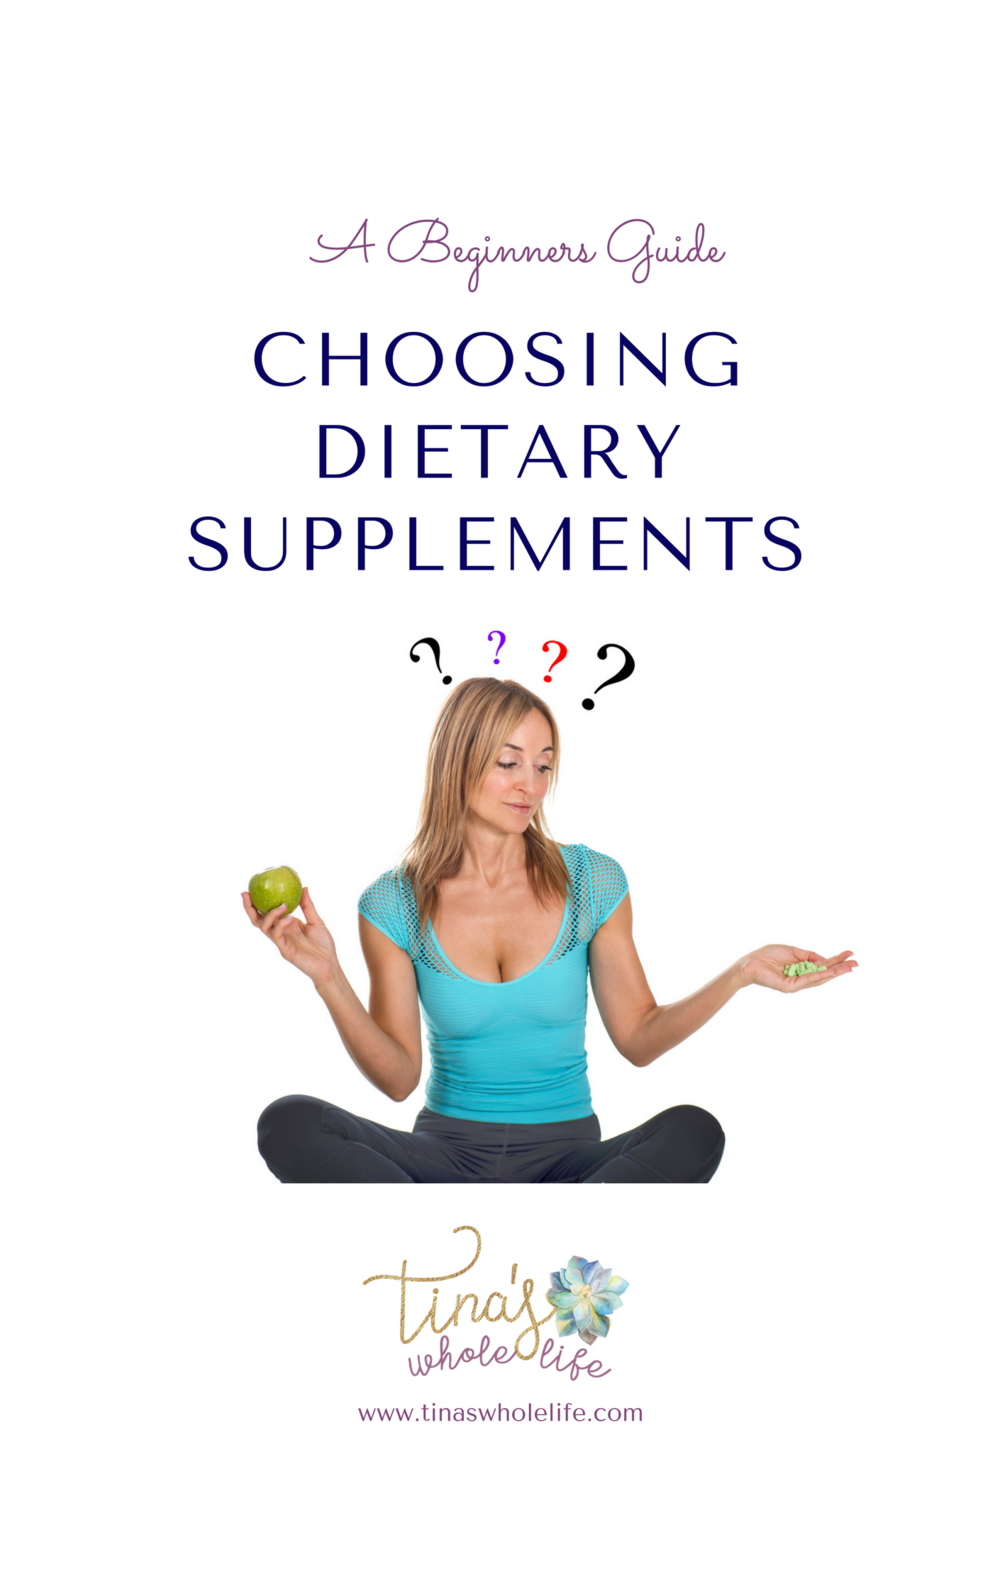 A Beginners Guide - Choosing Dietary Supplements cover.png